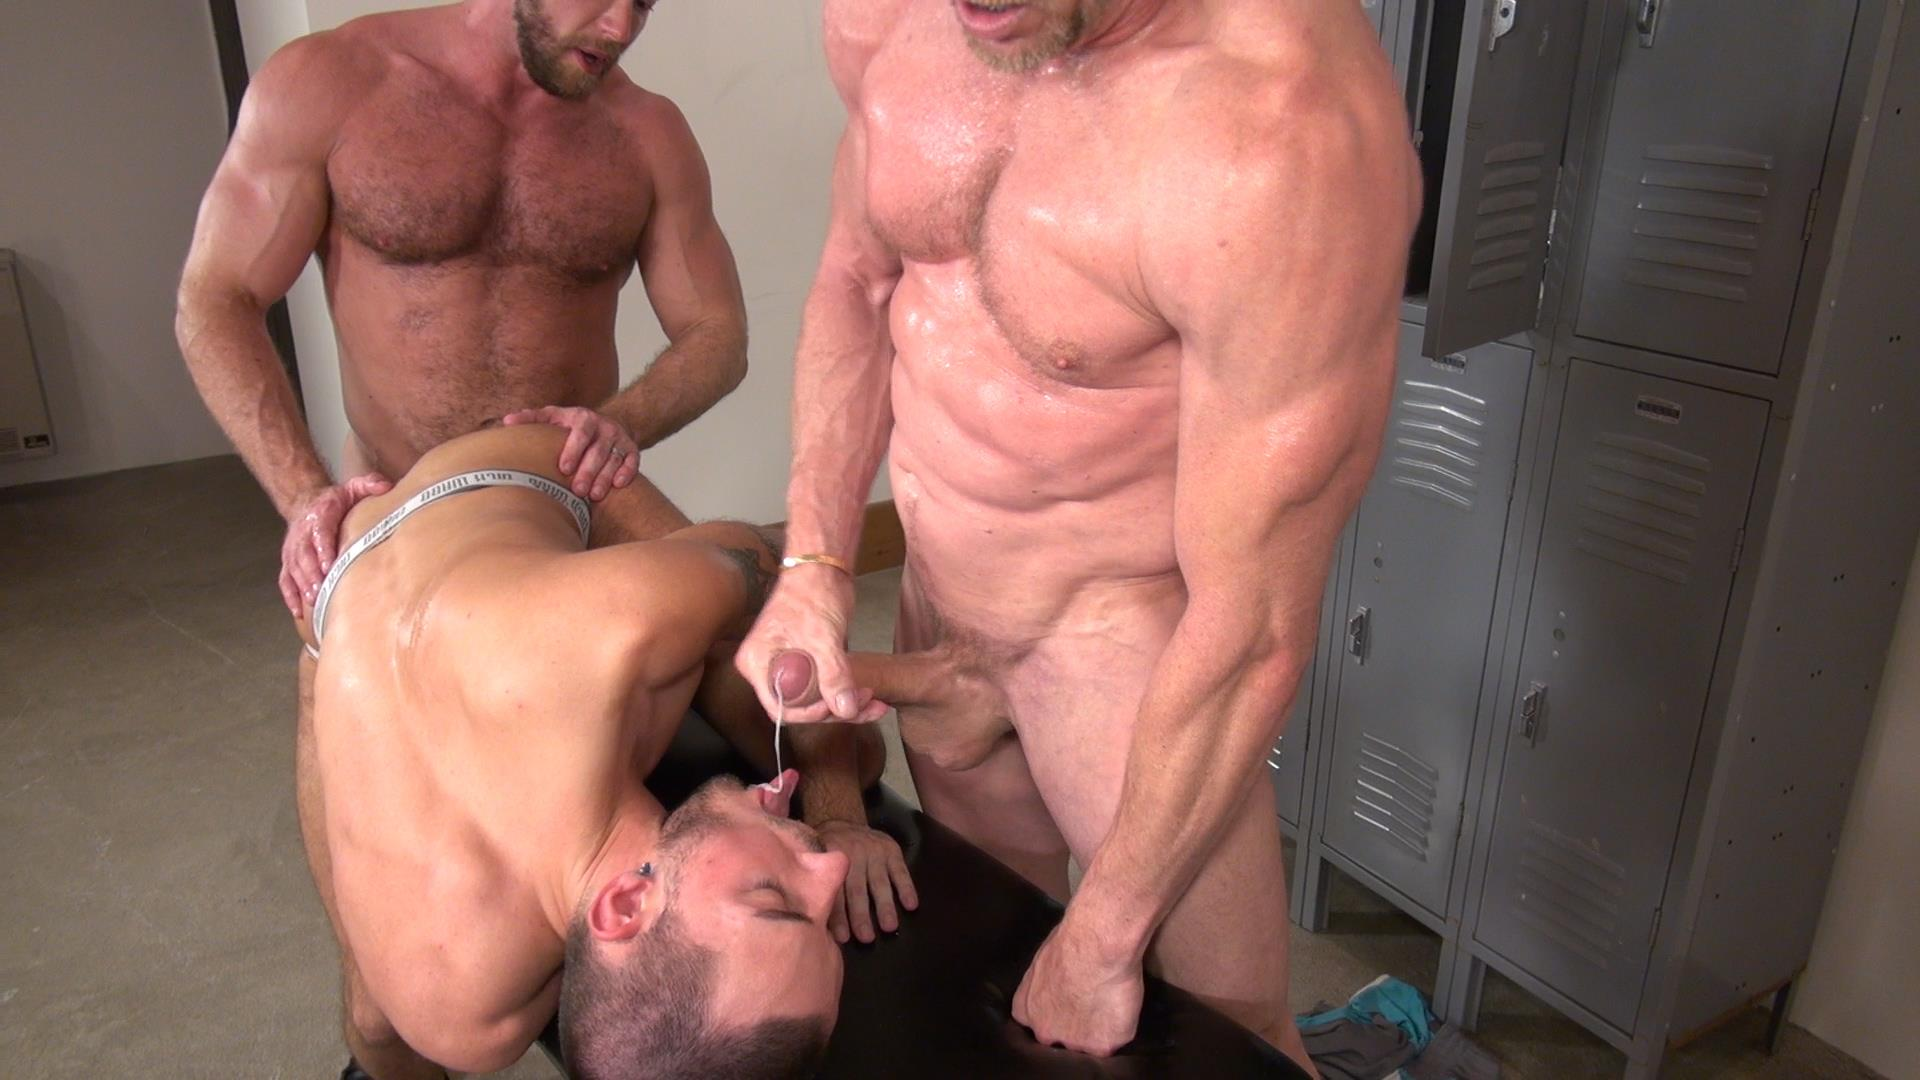 Raw-and-Rough-Gio-Ryder-and-Shay-Michaels-and-Parker-Jock-Gets-barebacked-by-two-muscle-daddy-Amateur-Gay-Porn-07 Jock Sniffing Slut Gio Ryder Takes Bareback Cocks Up The Ass